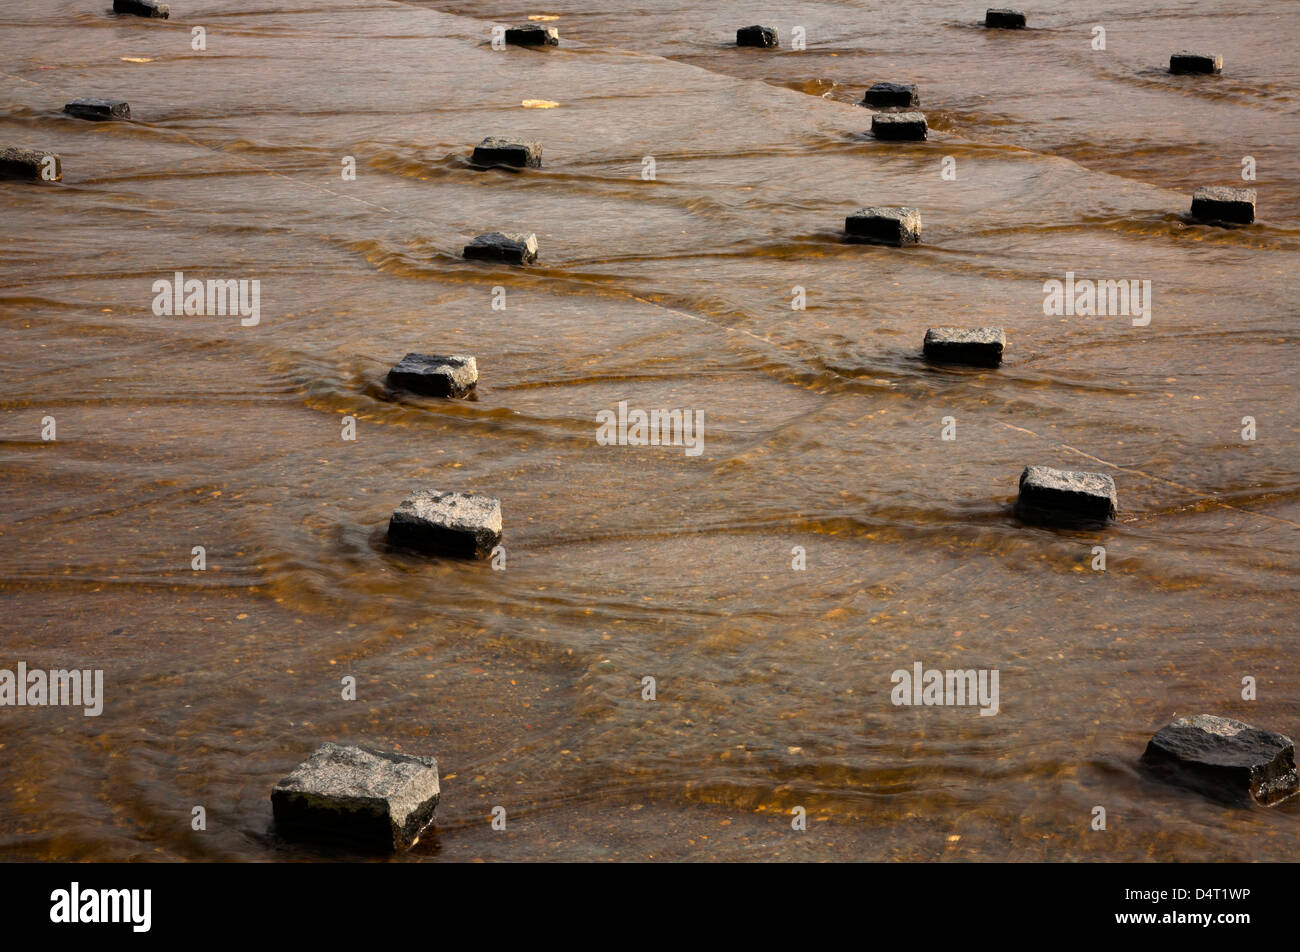 WA08189-00...WASHINGTON - The Texture Pond at Cal Anderson Park on Capitol Hill in Seattle. - Stock Image